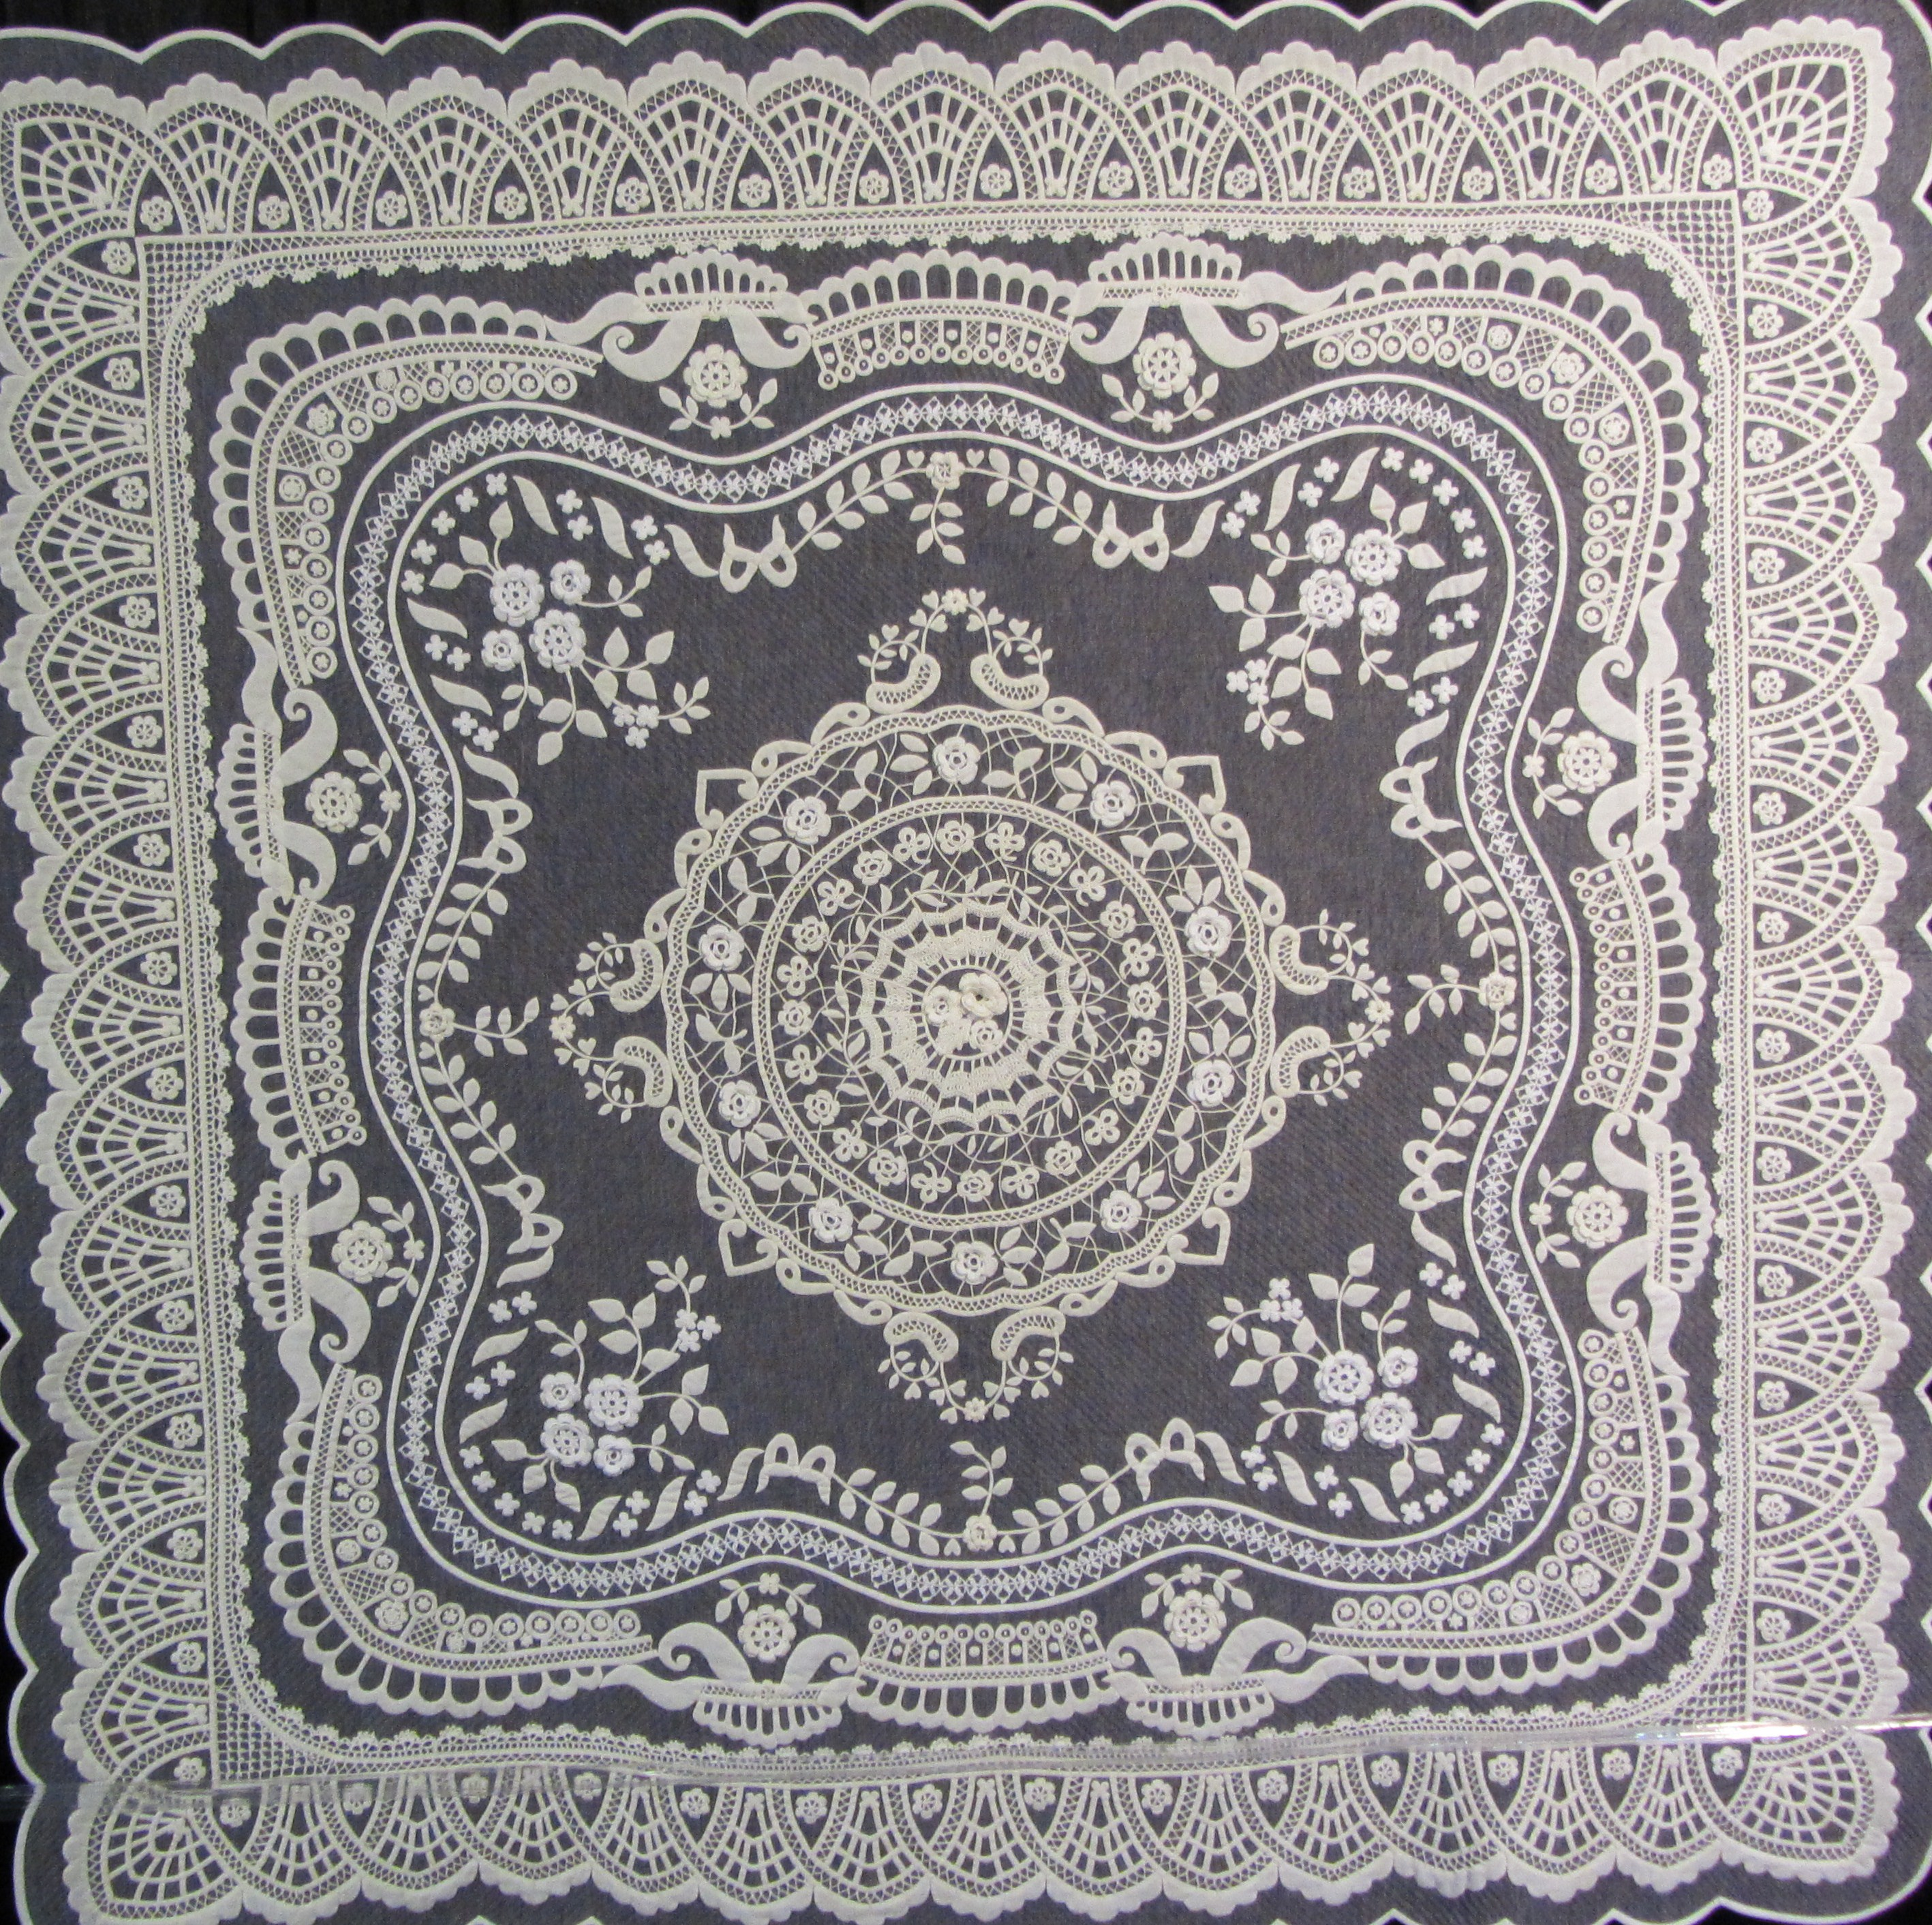 Irish Crochet Lace by Chieko Shiraishi of Japan.  A combination of crochet and quilting